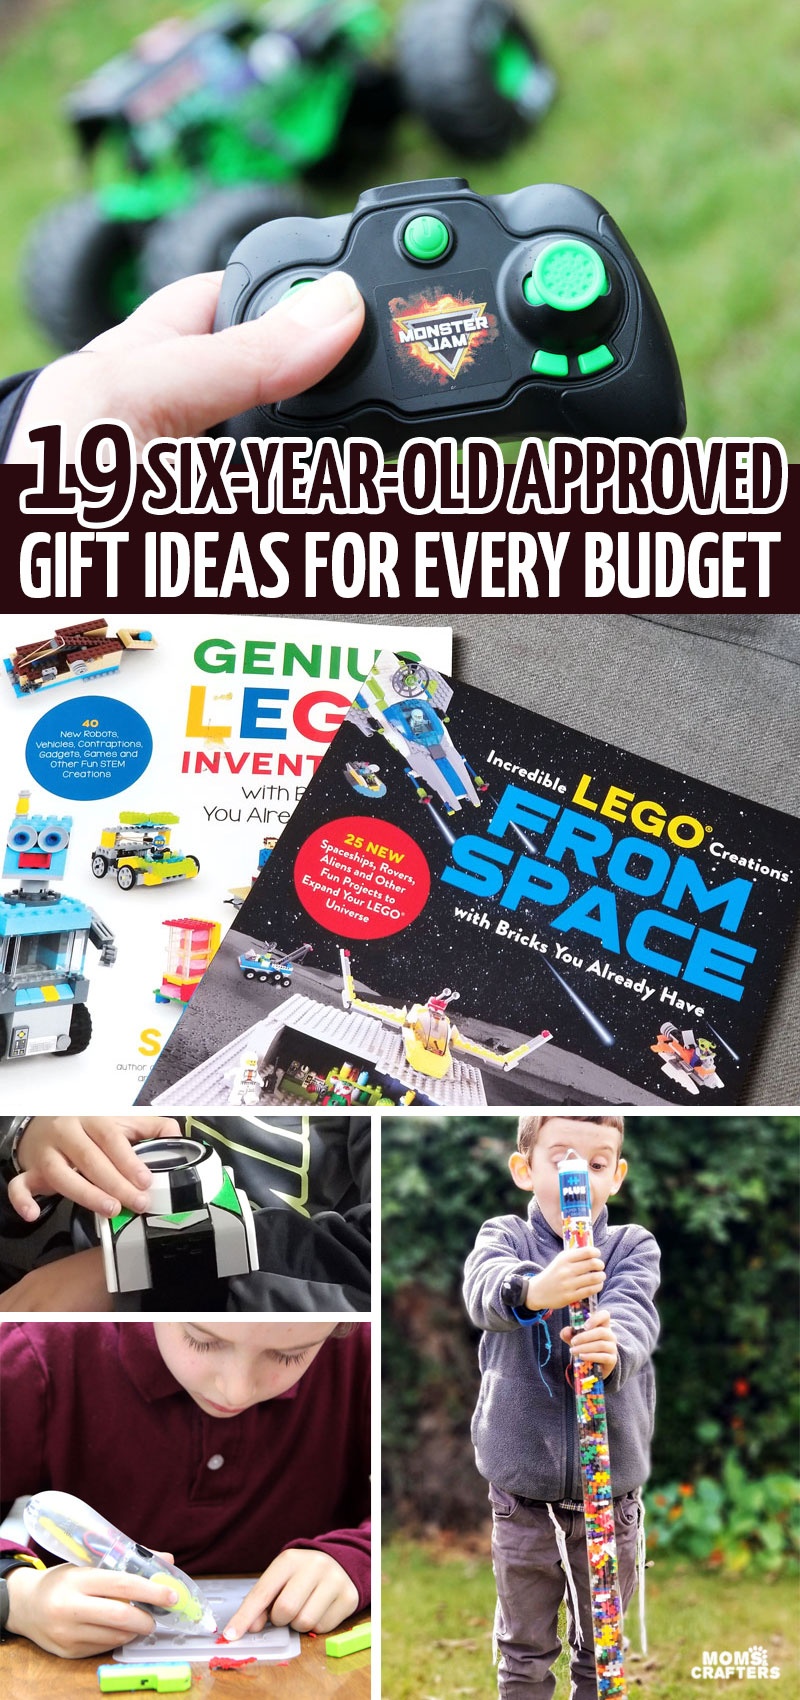 This holiday gift guide for boys ages 6 and up has practical and affordable ideas as well as bigger more epic gifts! It includes the best birthday gifts for 6 year old boys and ideas for hanukkah and Christmas too.